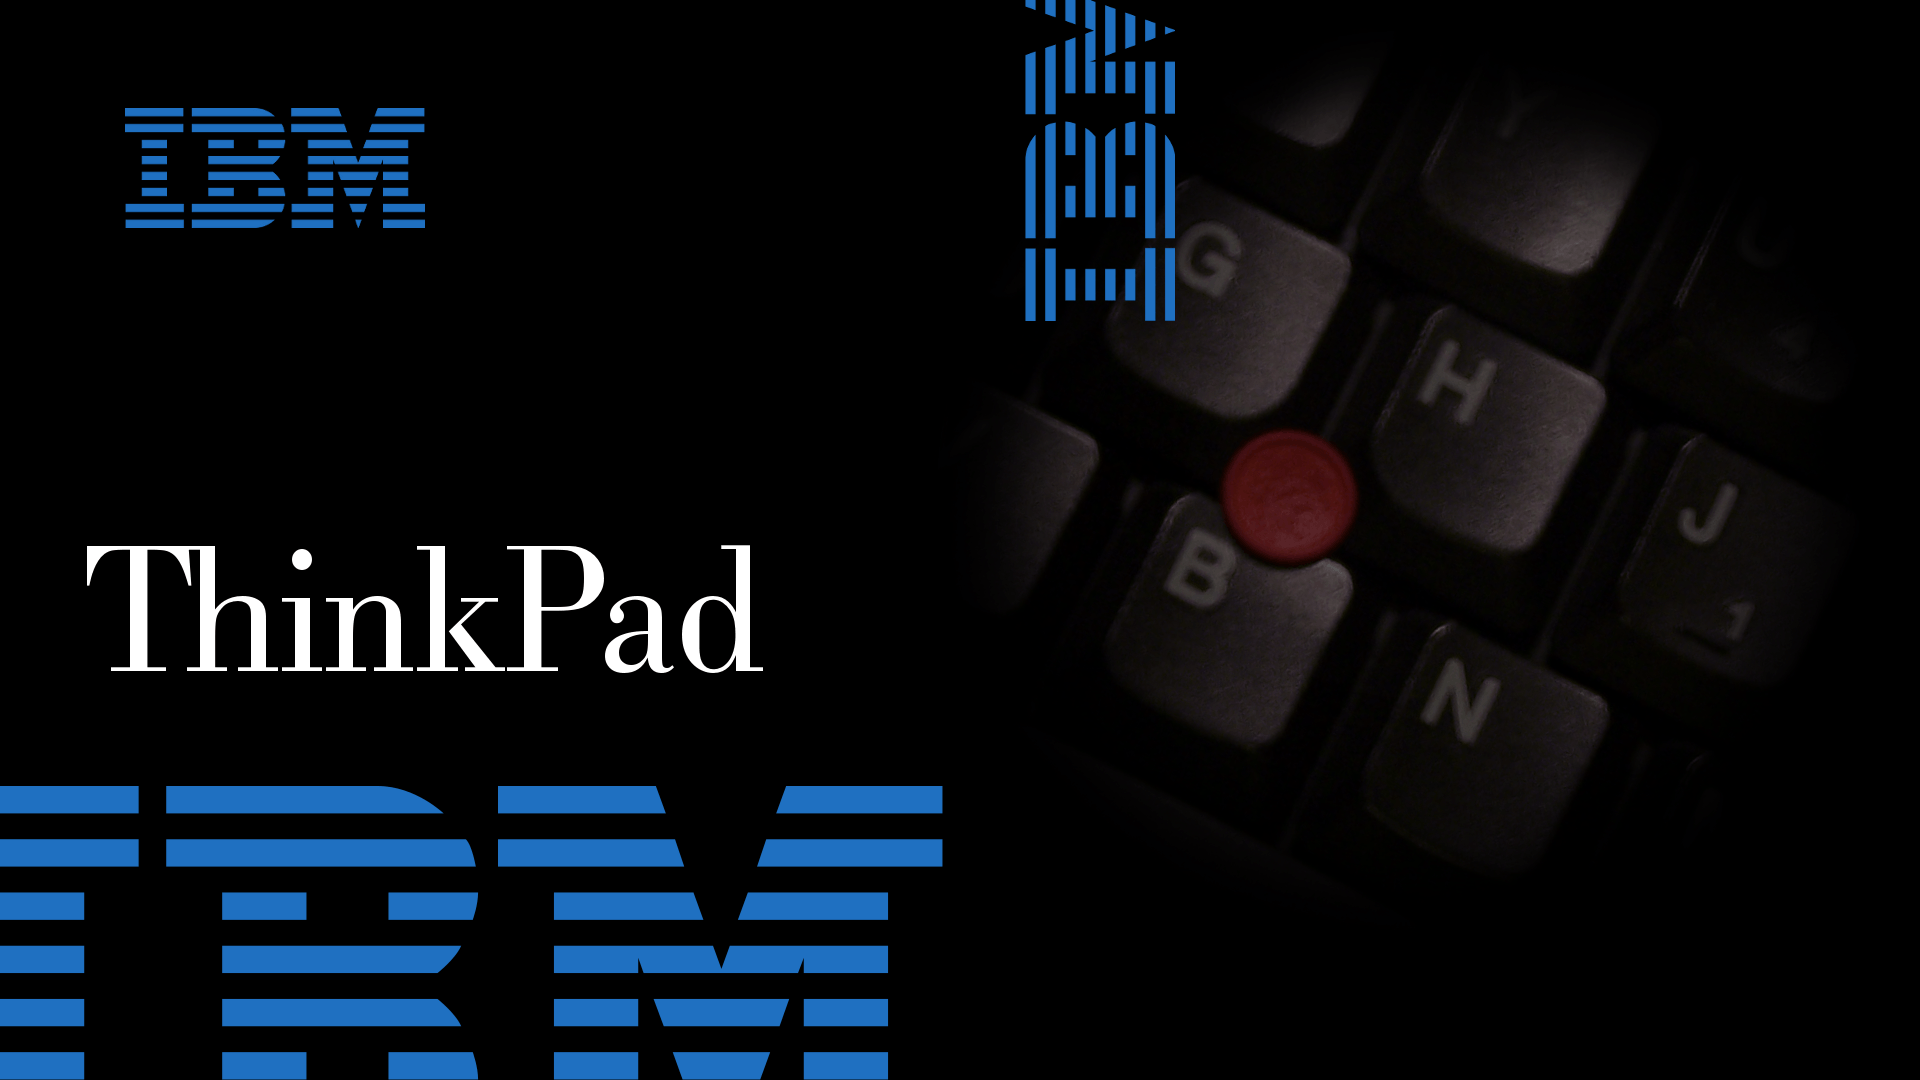 thinkpad wallpapers wallpaper - photo #20